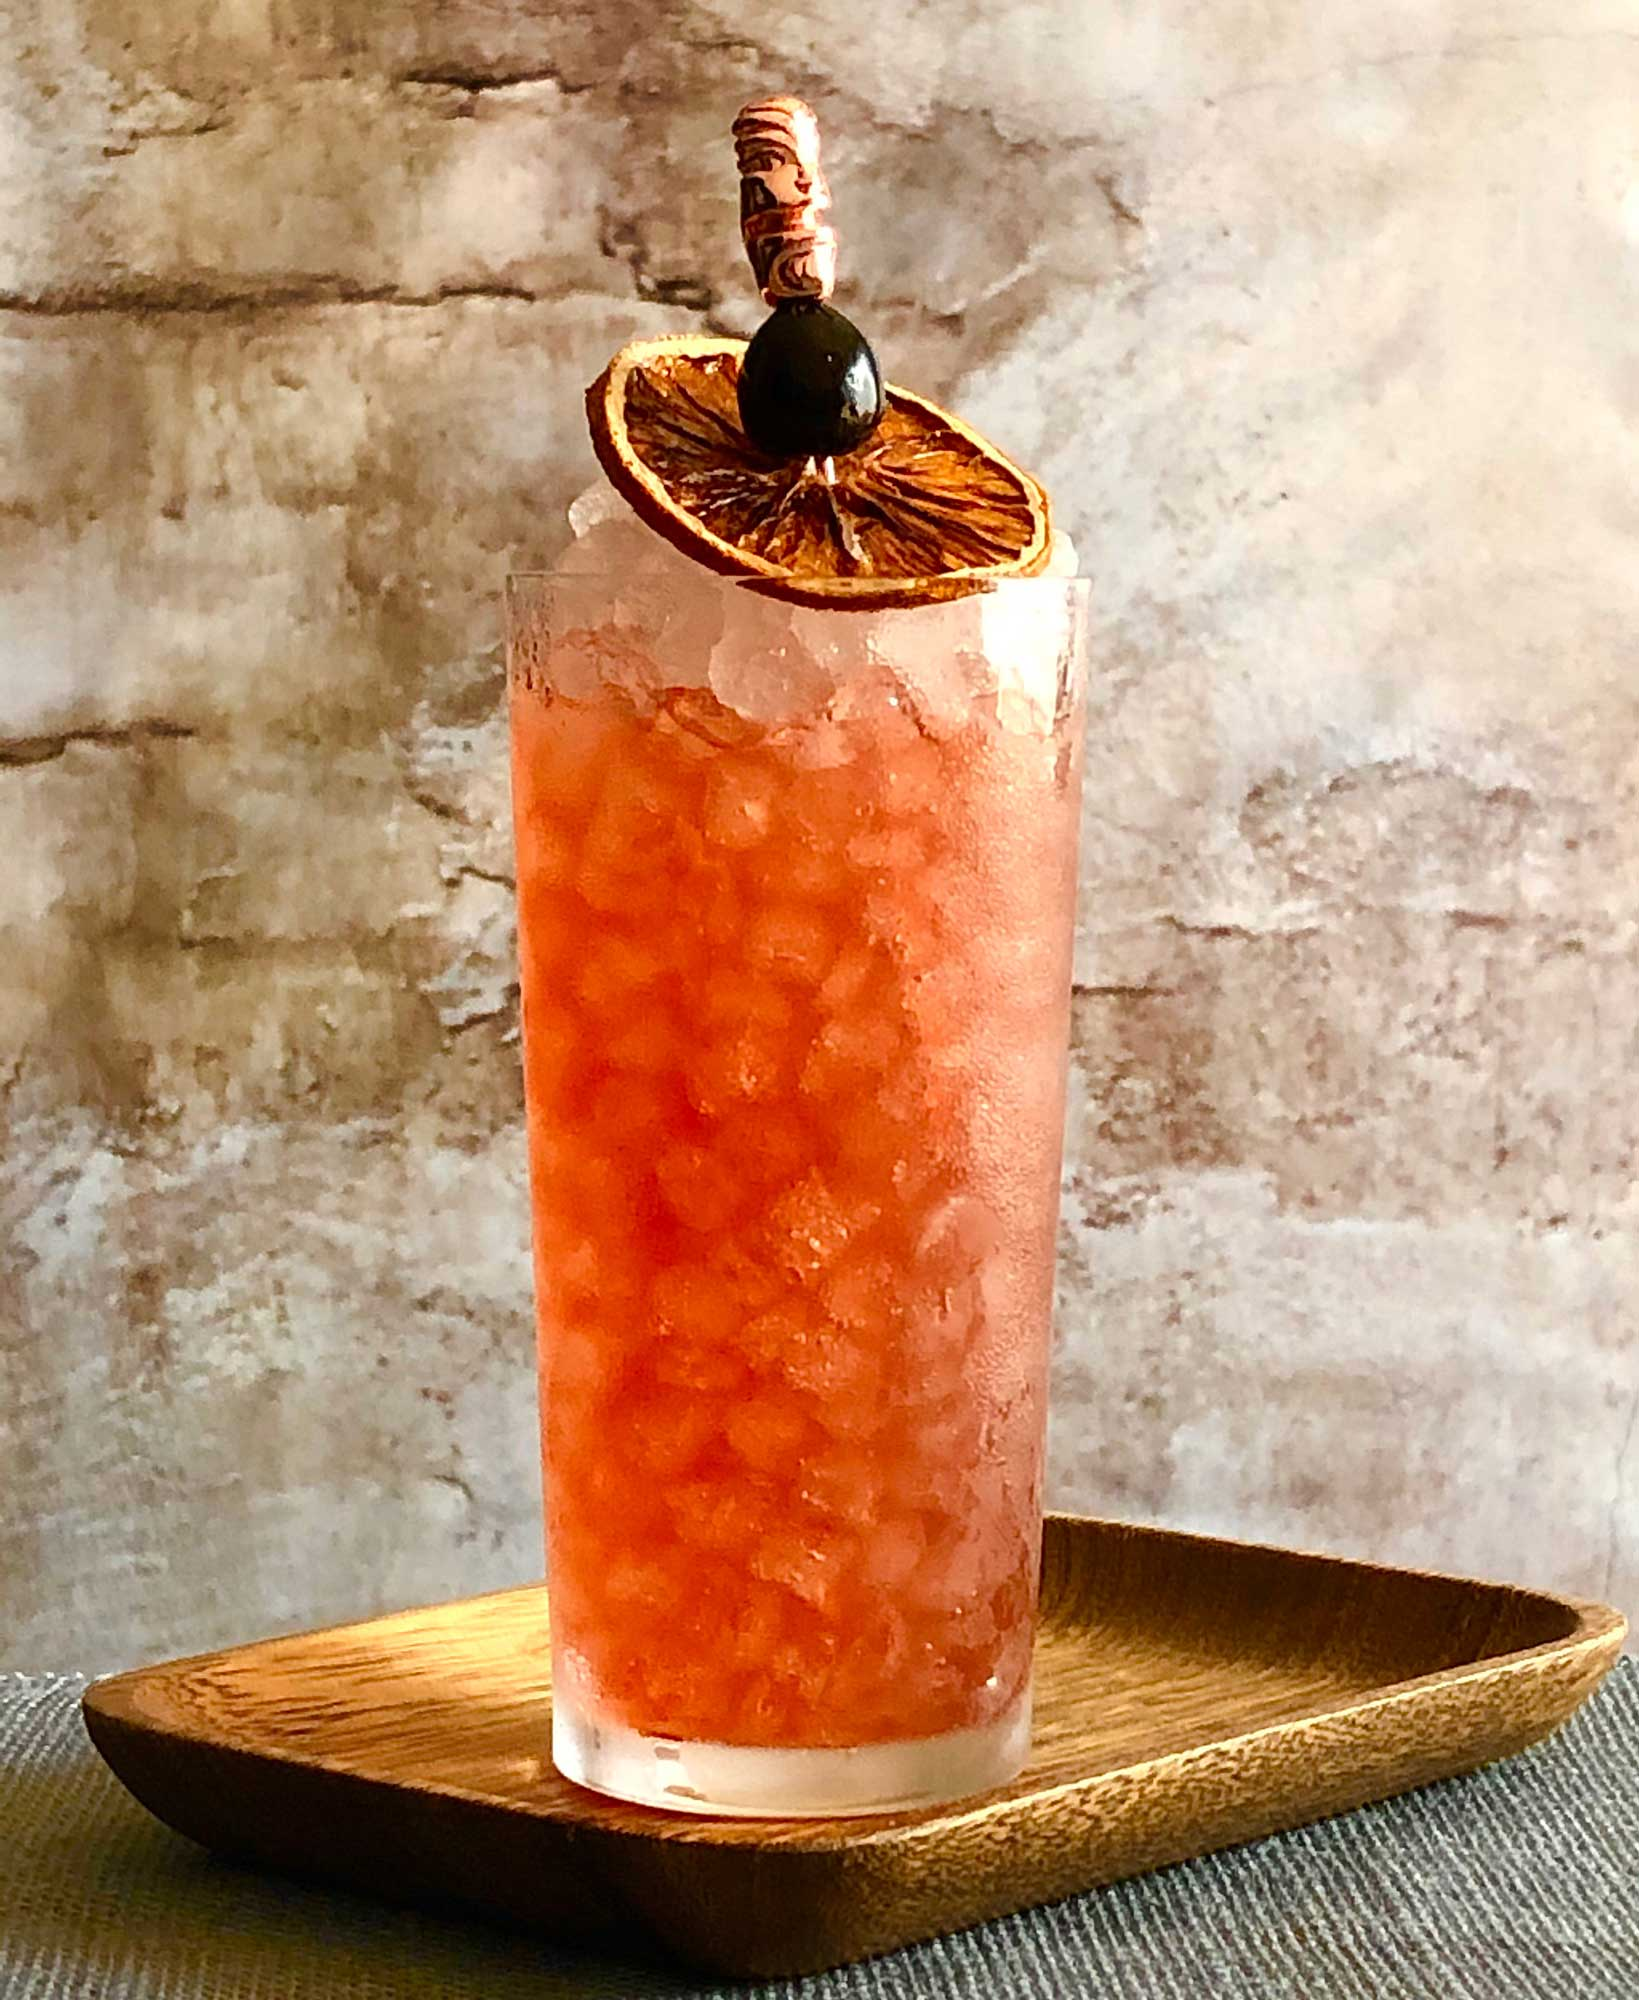 An example of the Seaside Frivolity, the mixed drink (cocktail), by Lee Edwards, featuring Cocchi Americano Rosa, Hayman's Old Tom Gin, orange juice, Rothman & Winter Orchard Peach Liqueur, and grenadine; photo by Lee Edwards